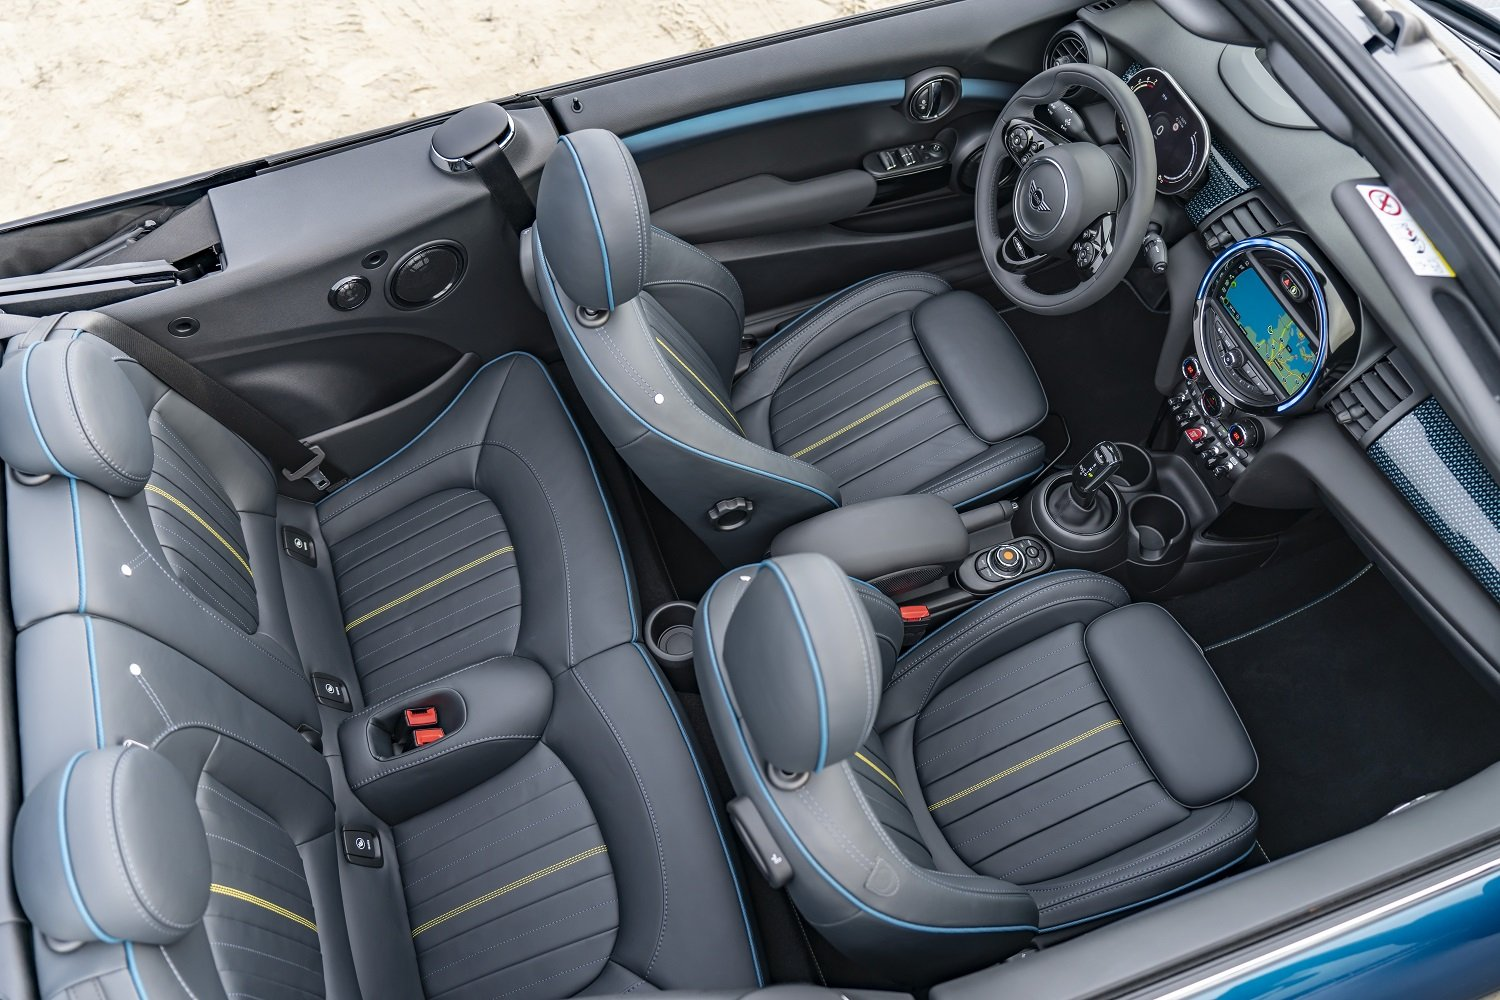 MINI goes topless with new Sidewalk Edition Cooper S